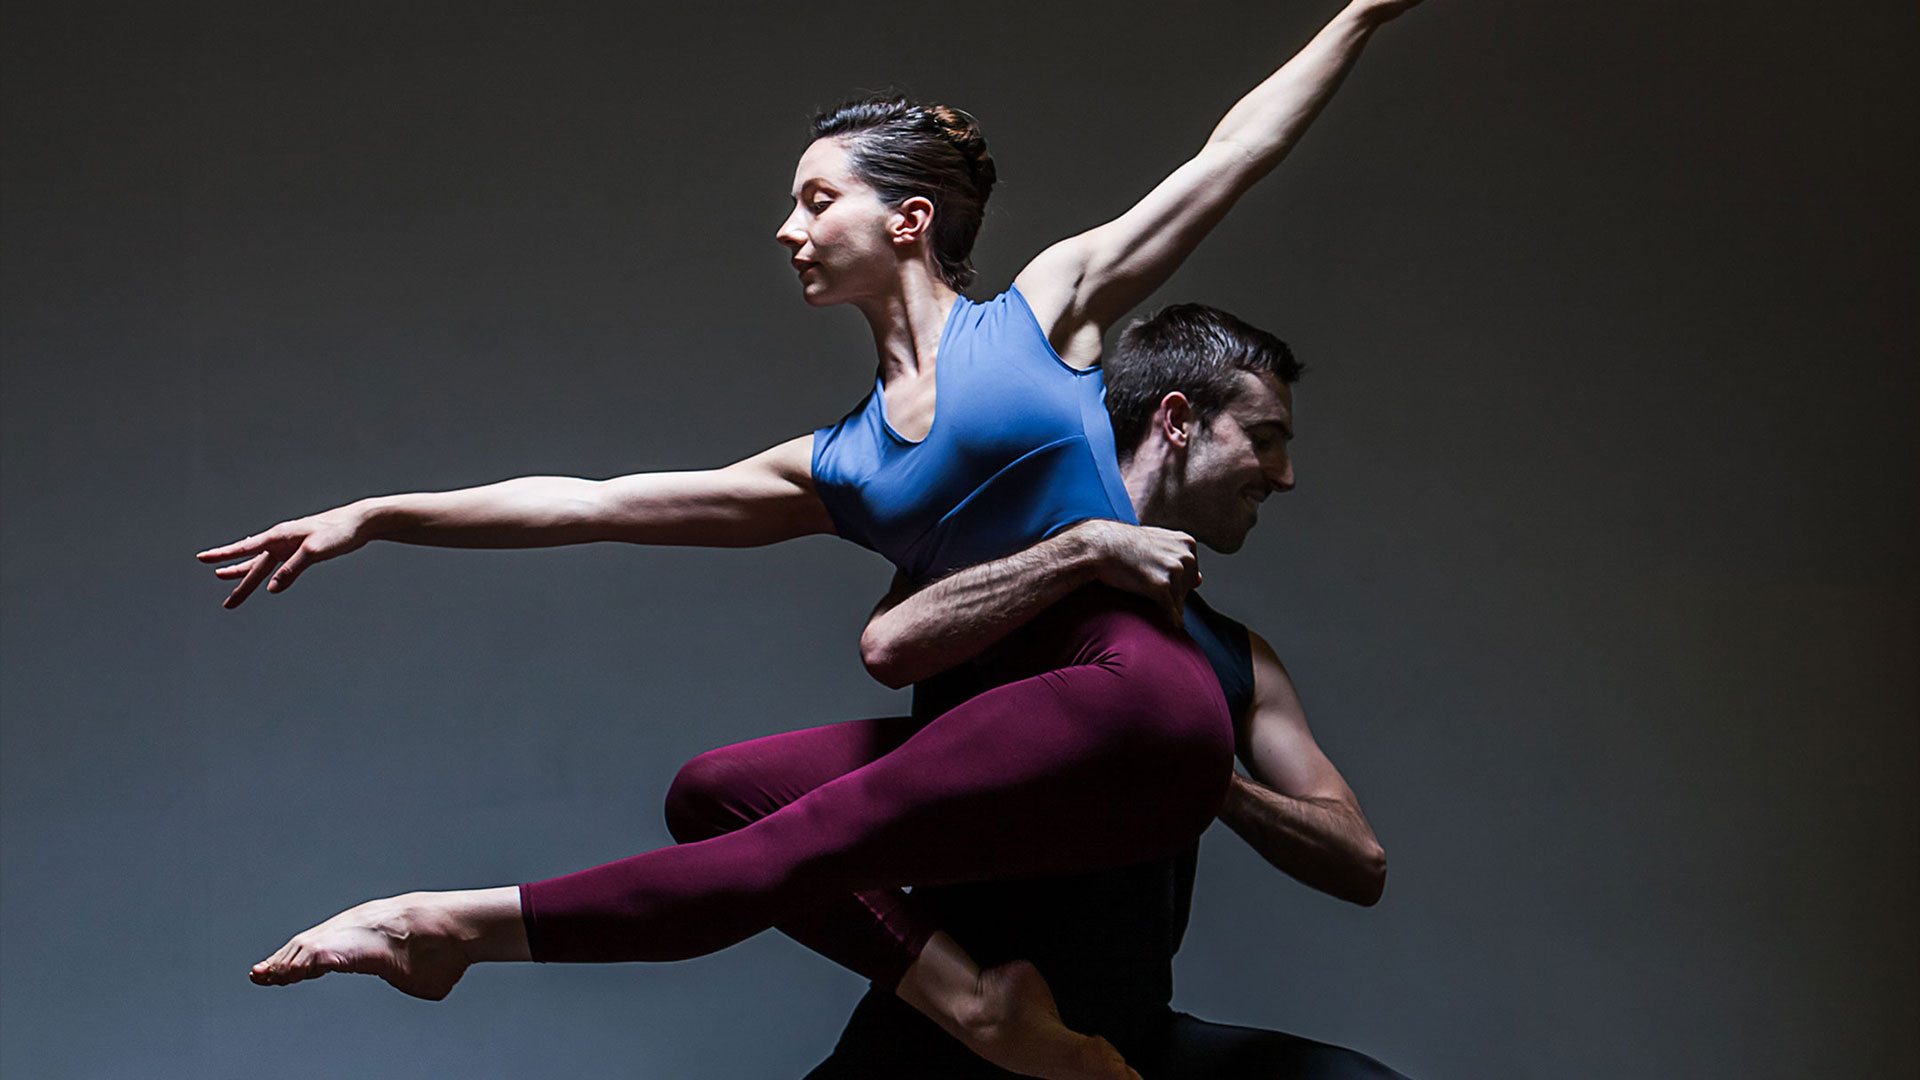 photo by Johnny Buzzerio of Edd Mitton and Amy Thake (dancers).